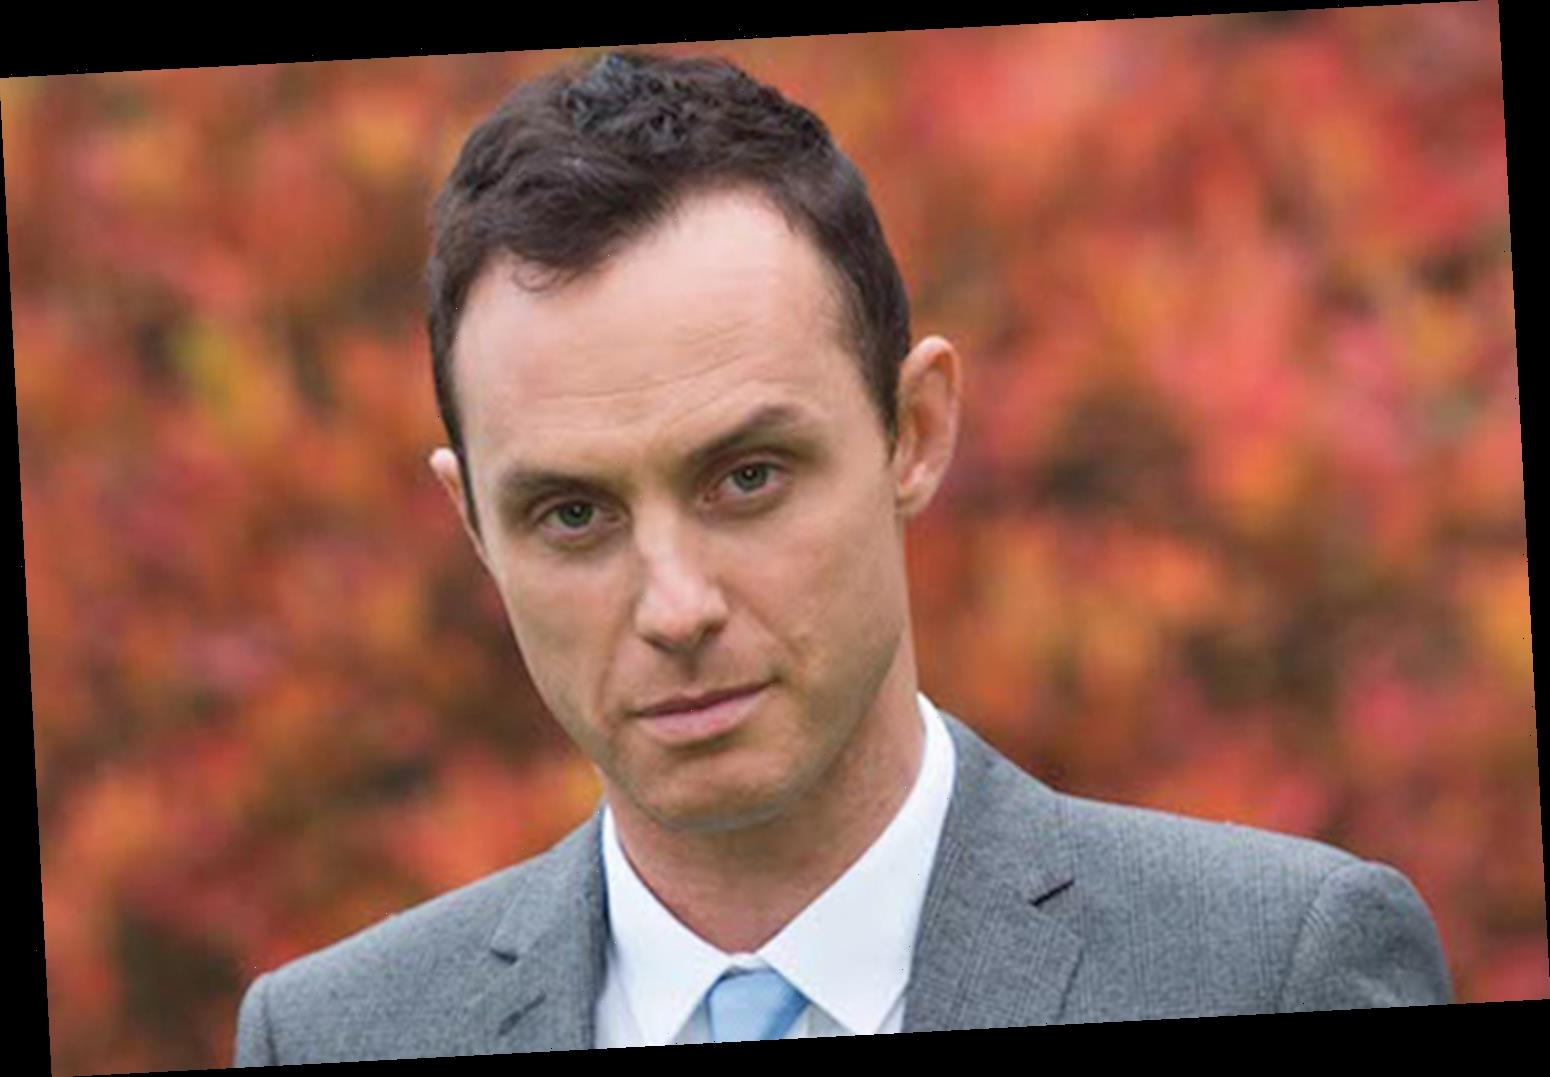 Hollyoaks spoilers: James Nightingale kicked out by his family after violently attacking son Romeo